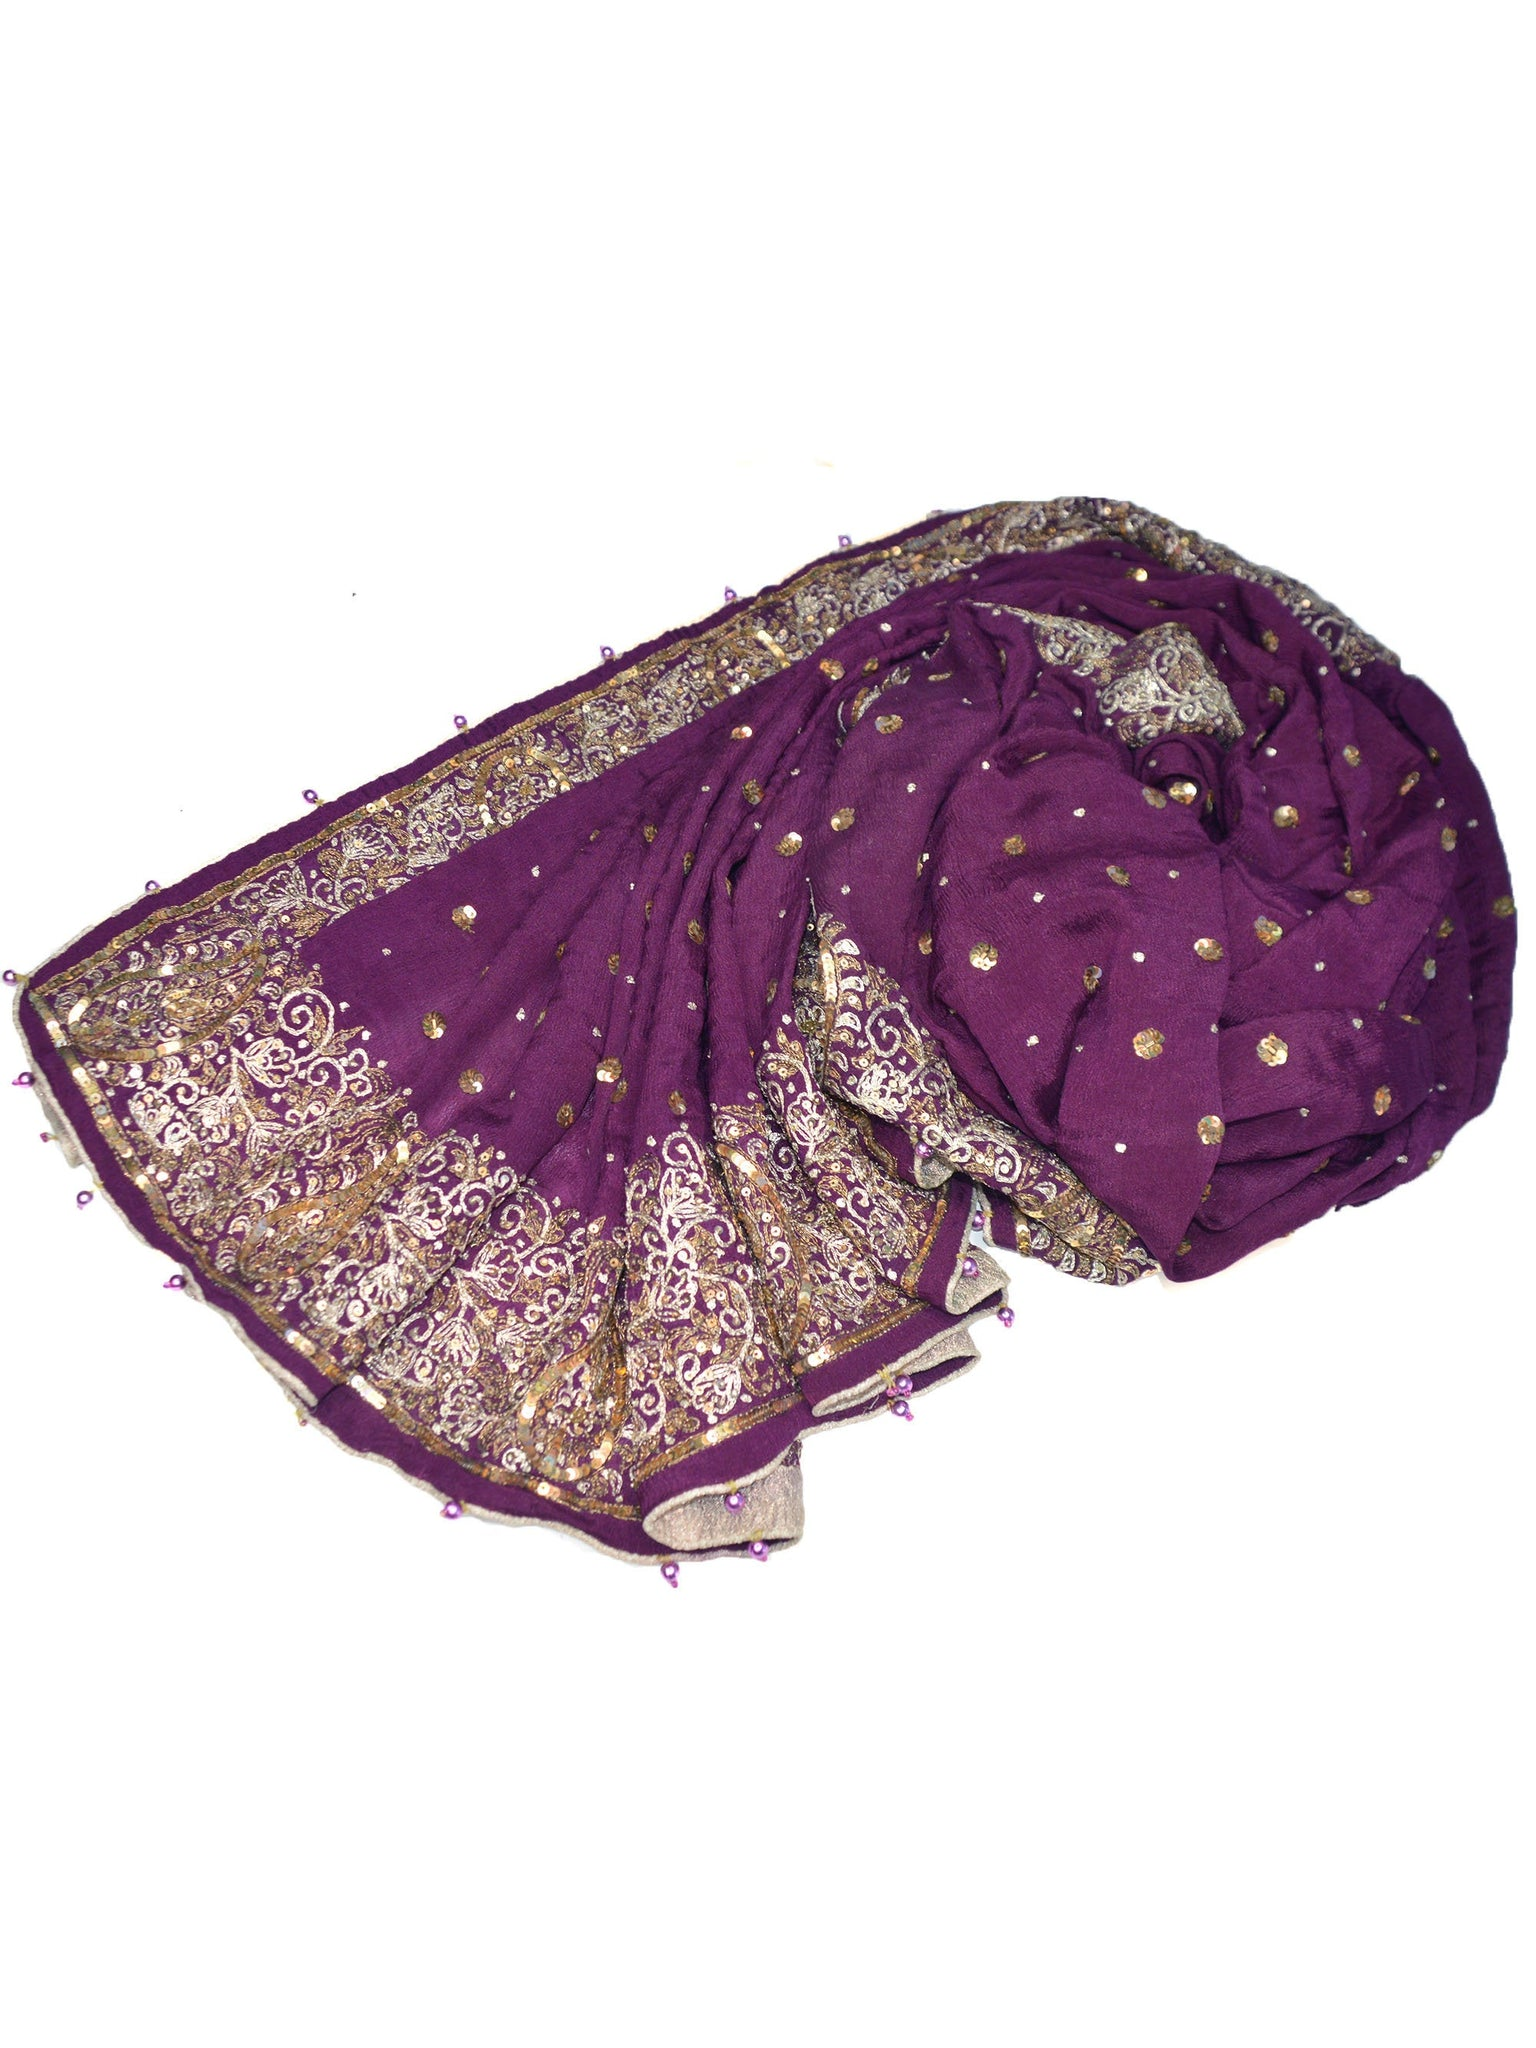 Long purple wedding shawl with sequins.